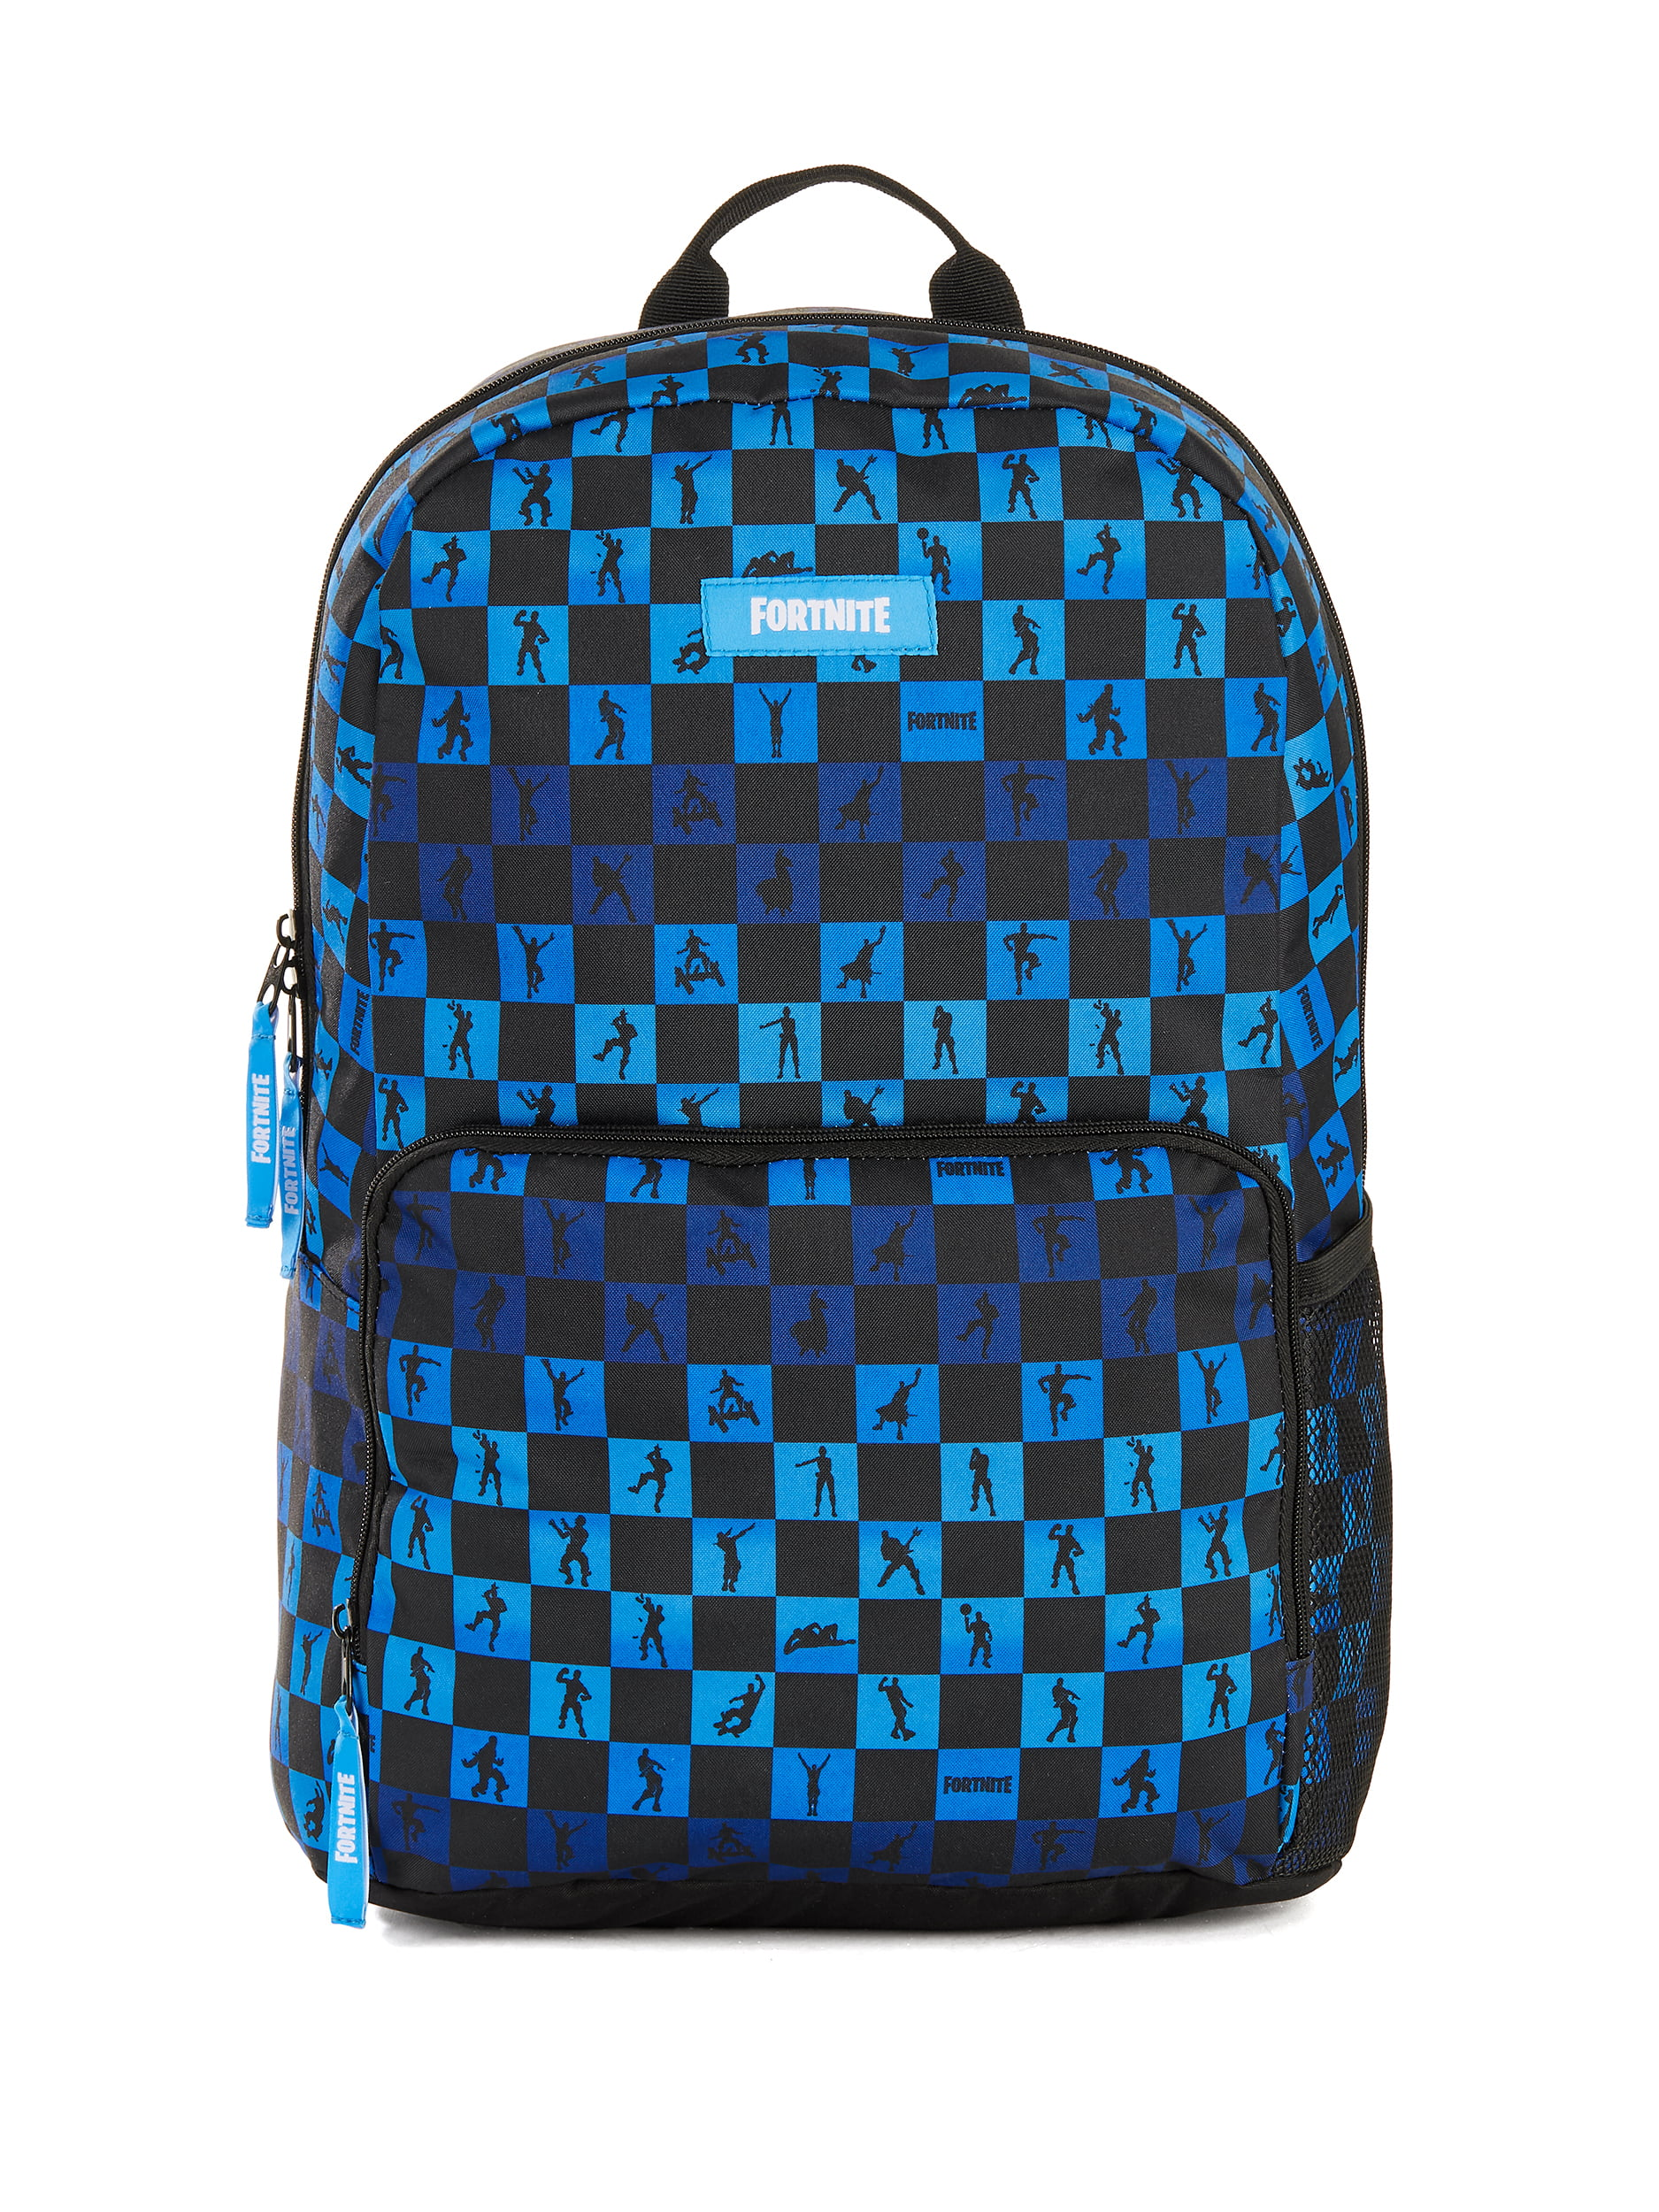 Fortnite Dancing Amplify School Backpack Book Bag /& Lunch Box Tote Boys Bright